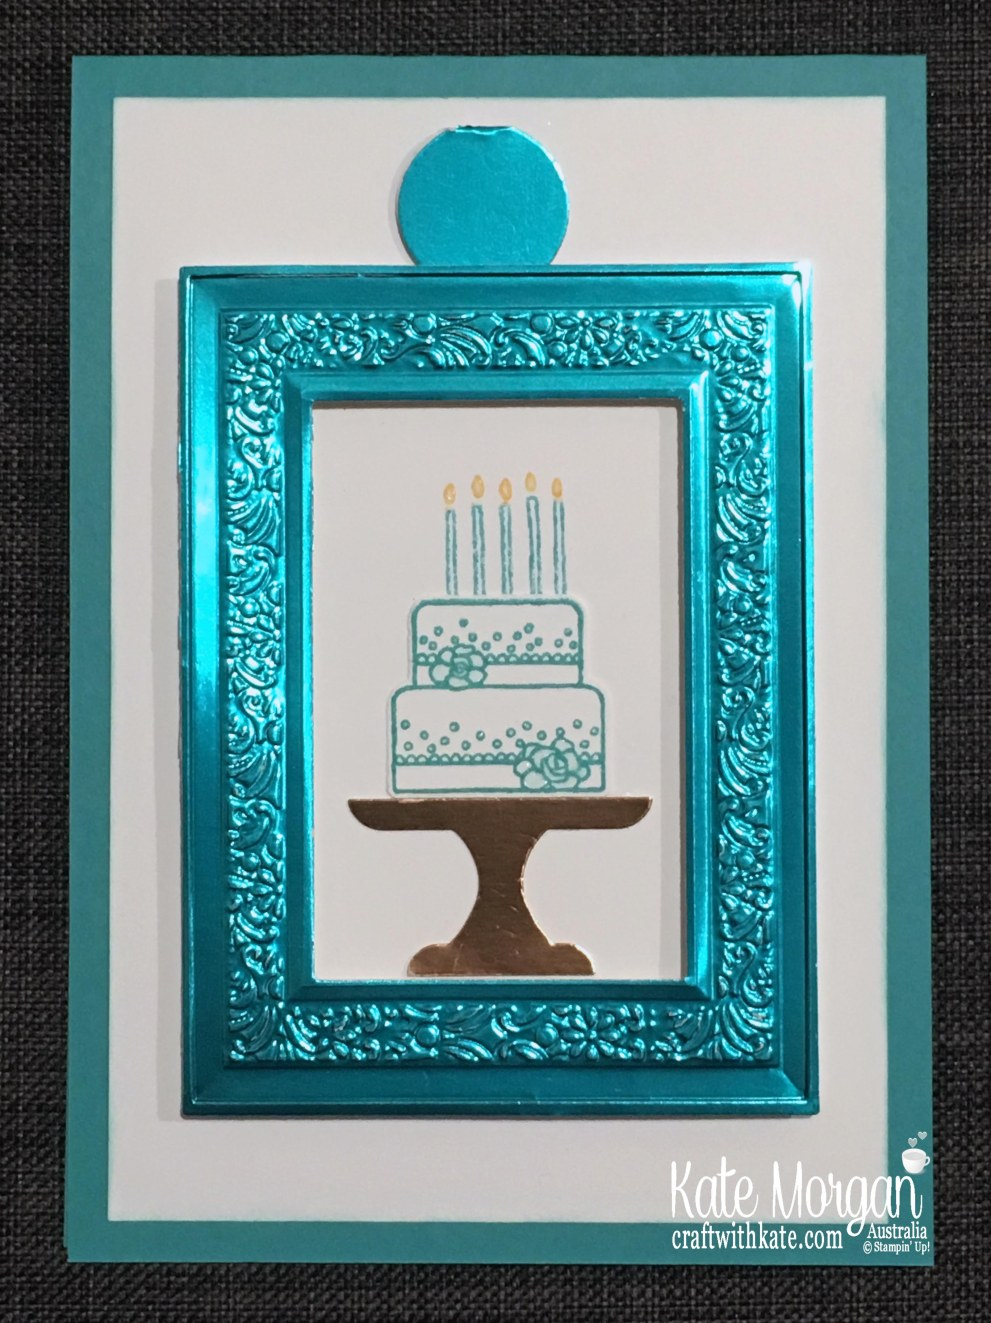 Pull Tab Slider Card using Stampin Up Heirloom Frames, Peacock Foil, Piece of Cake  by Kate Morgan, Australia 2019.JPG